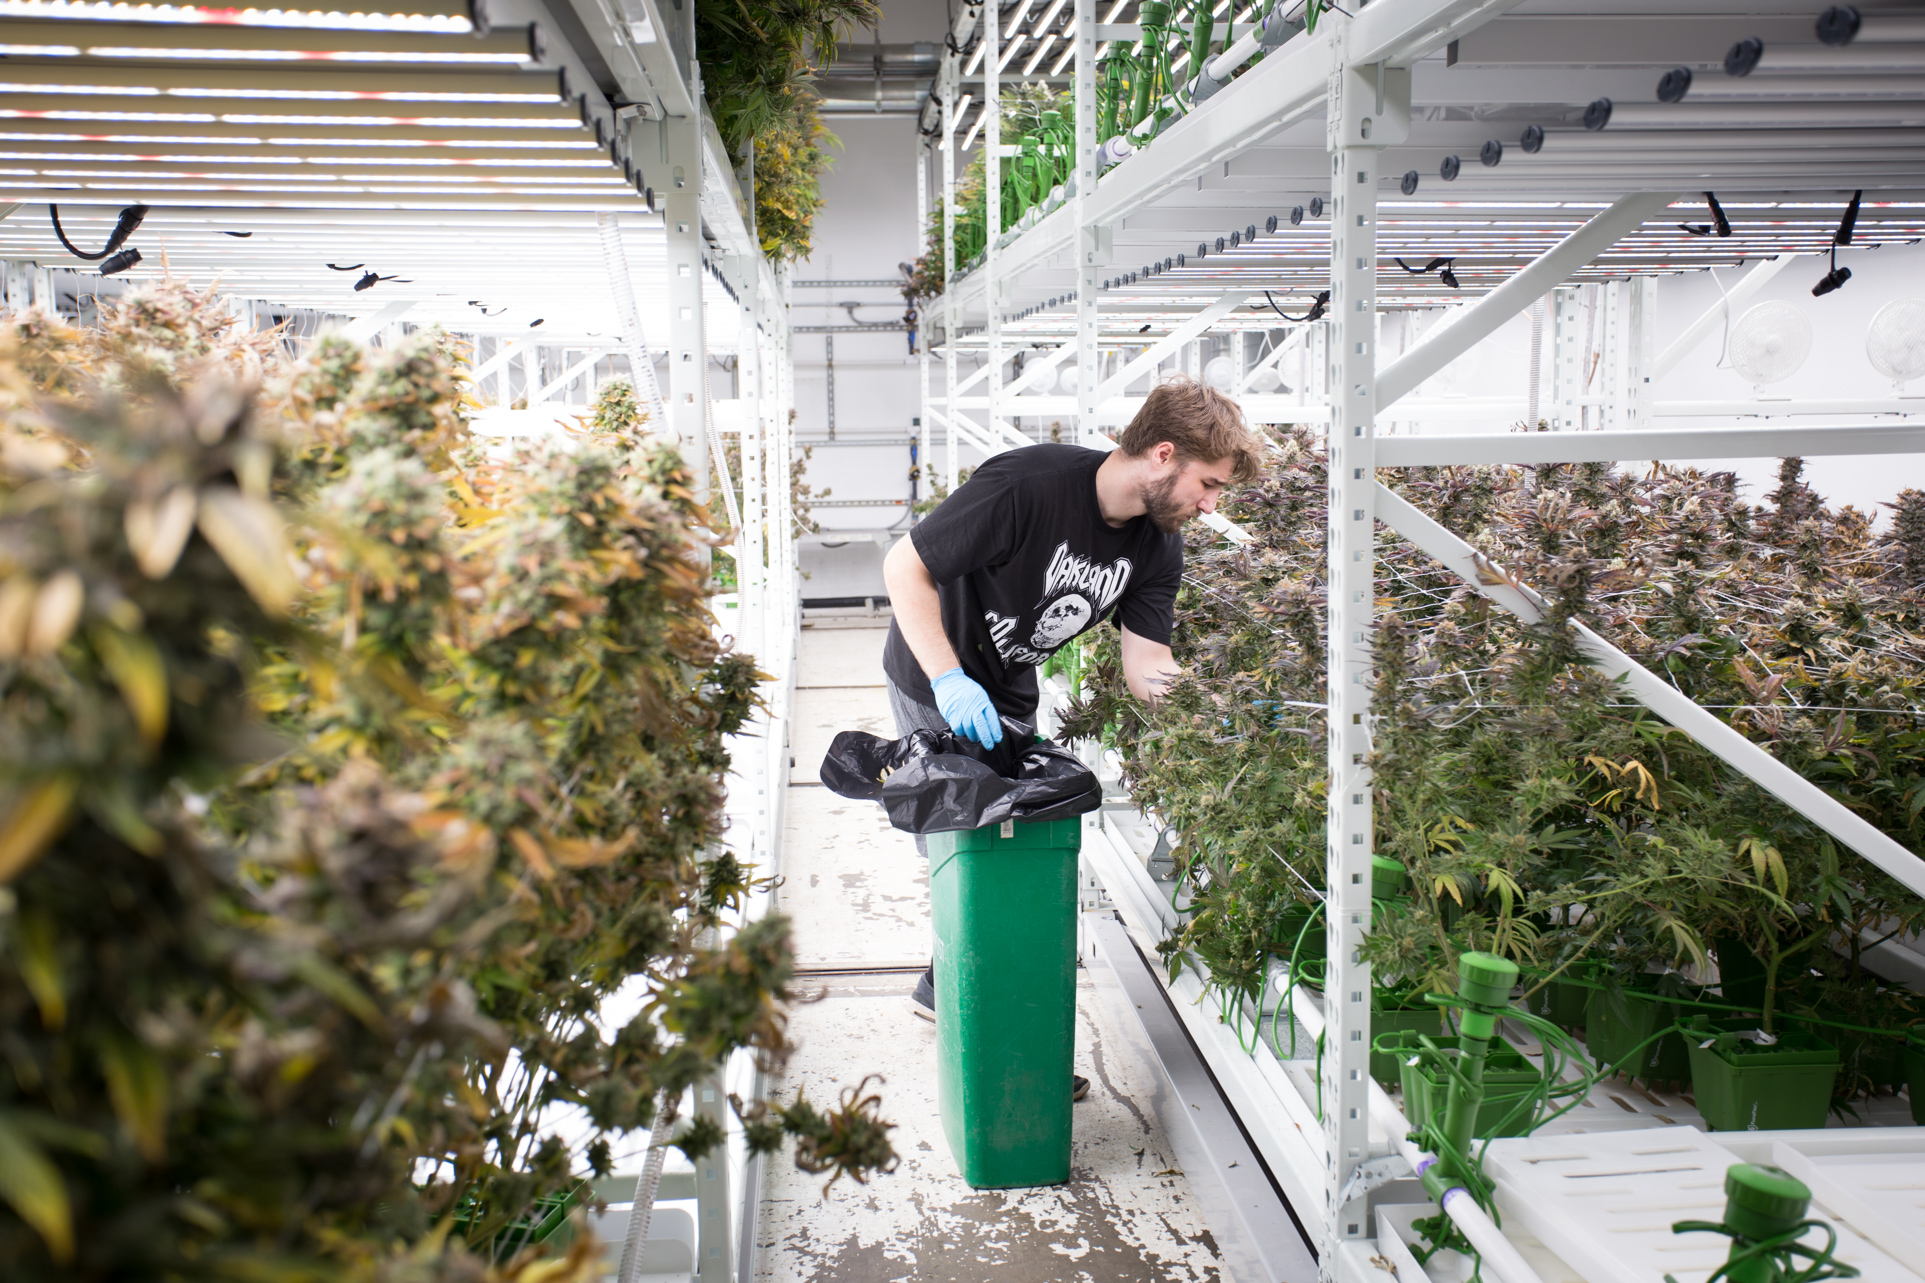 ActivRAC system optimizes space at cannabis grow facility